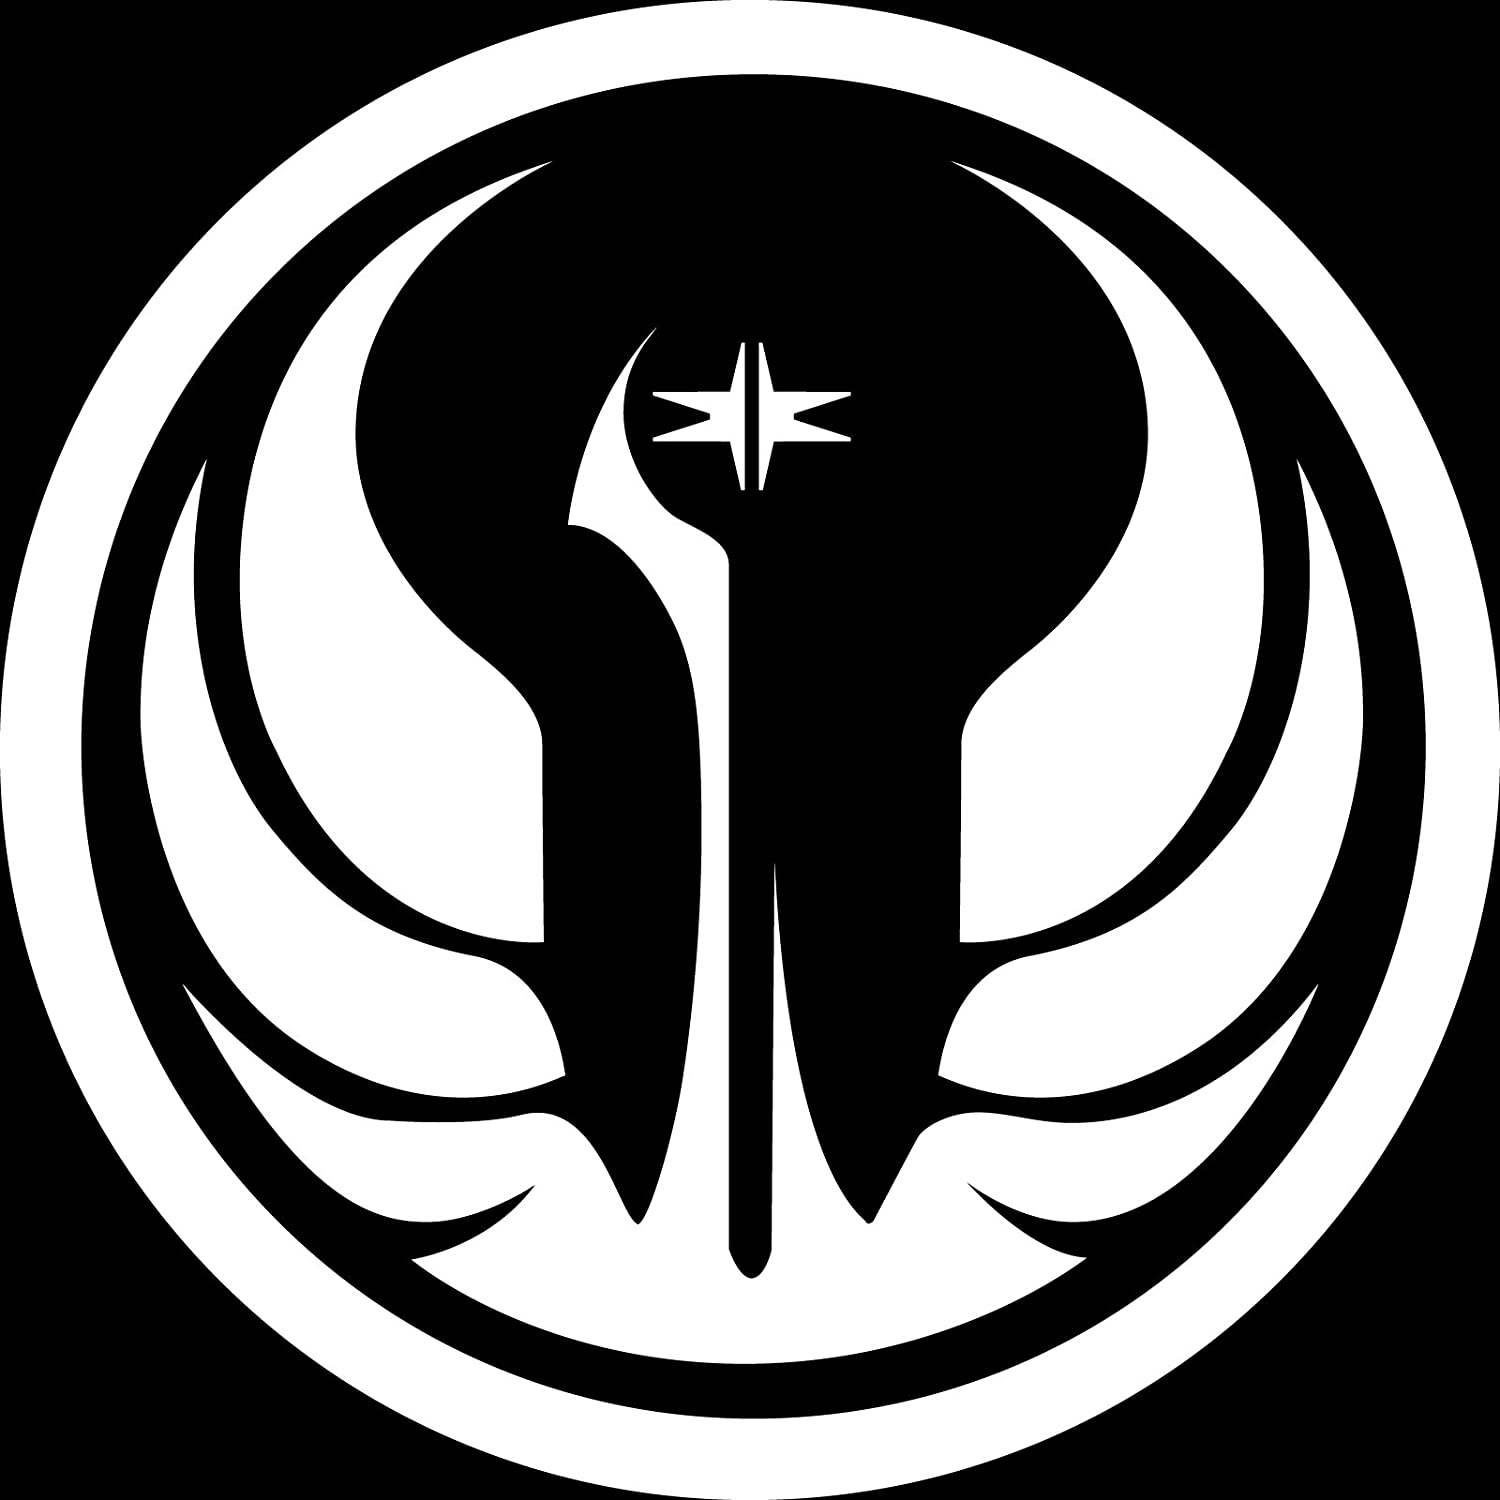 Amazon star wars galactic republic symbol logo 55 white amazon star wars galactic republic symbol logo 55 white ikon sign exclusive vinyl decal sticker notebook laptop ipad window wall car buycottarizona Choice Image